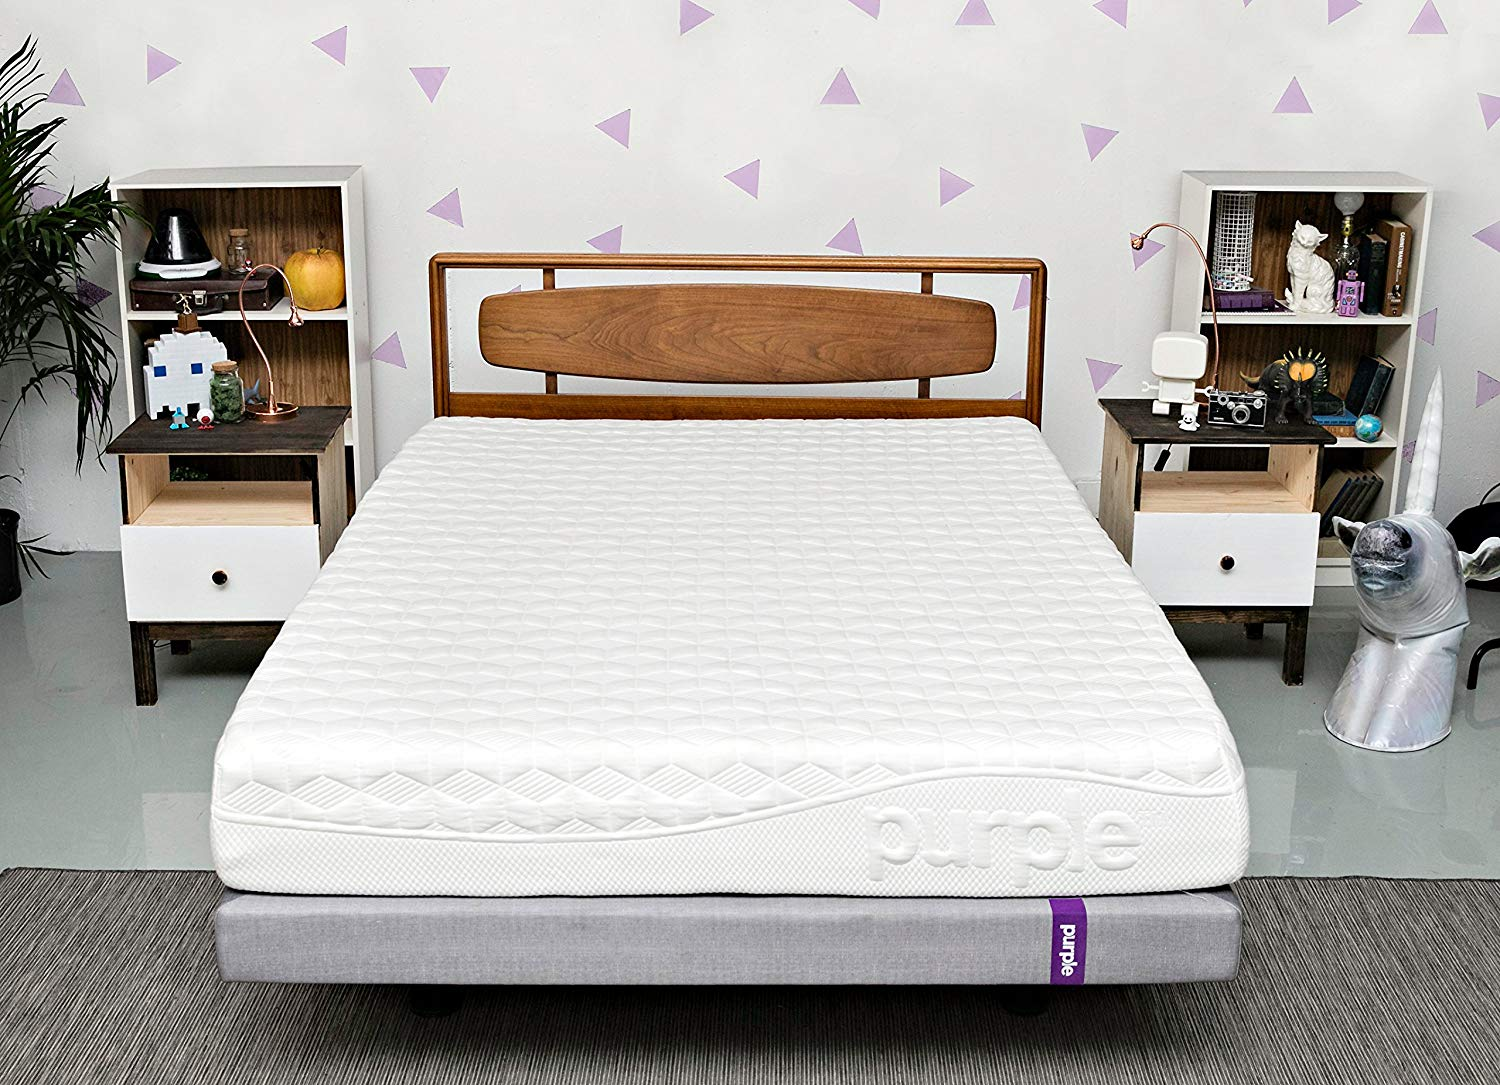 Review of the Purple Mattress